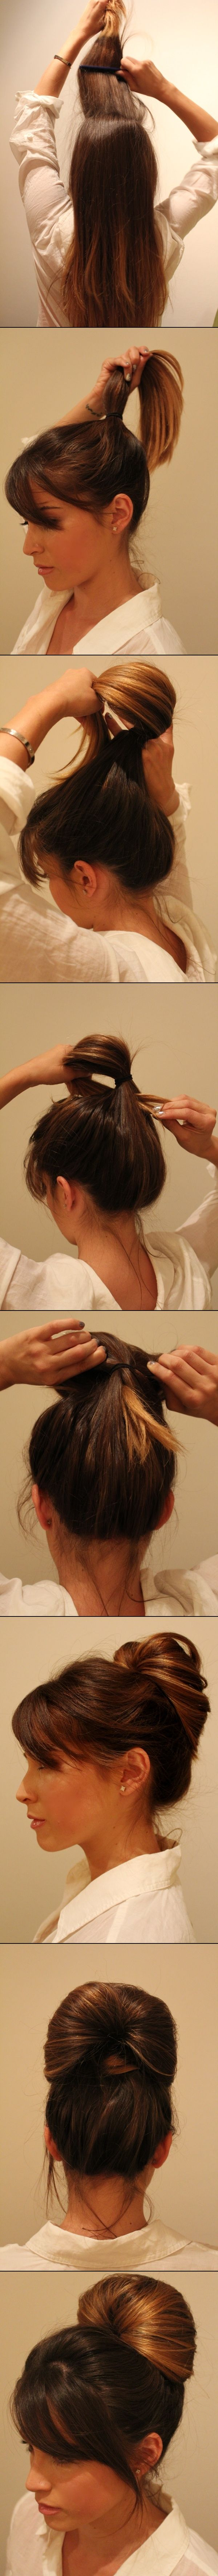 Go-to Up-do Hair